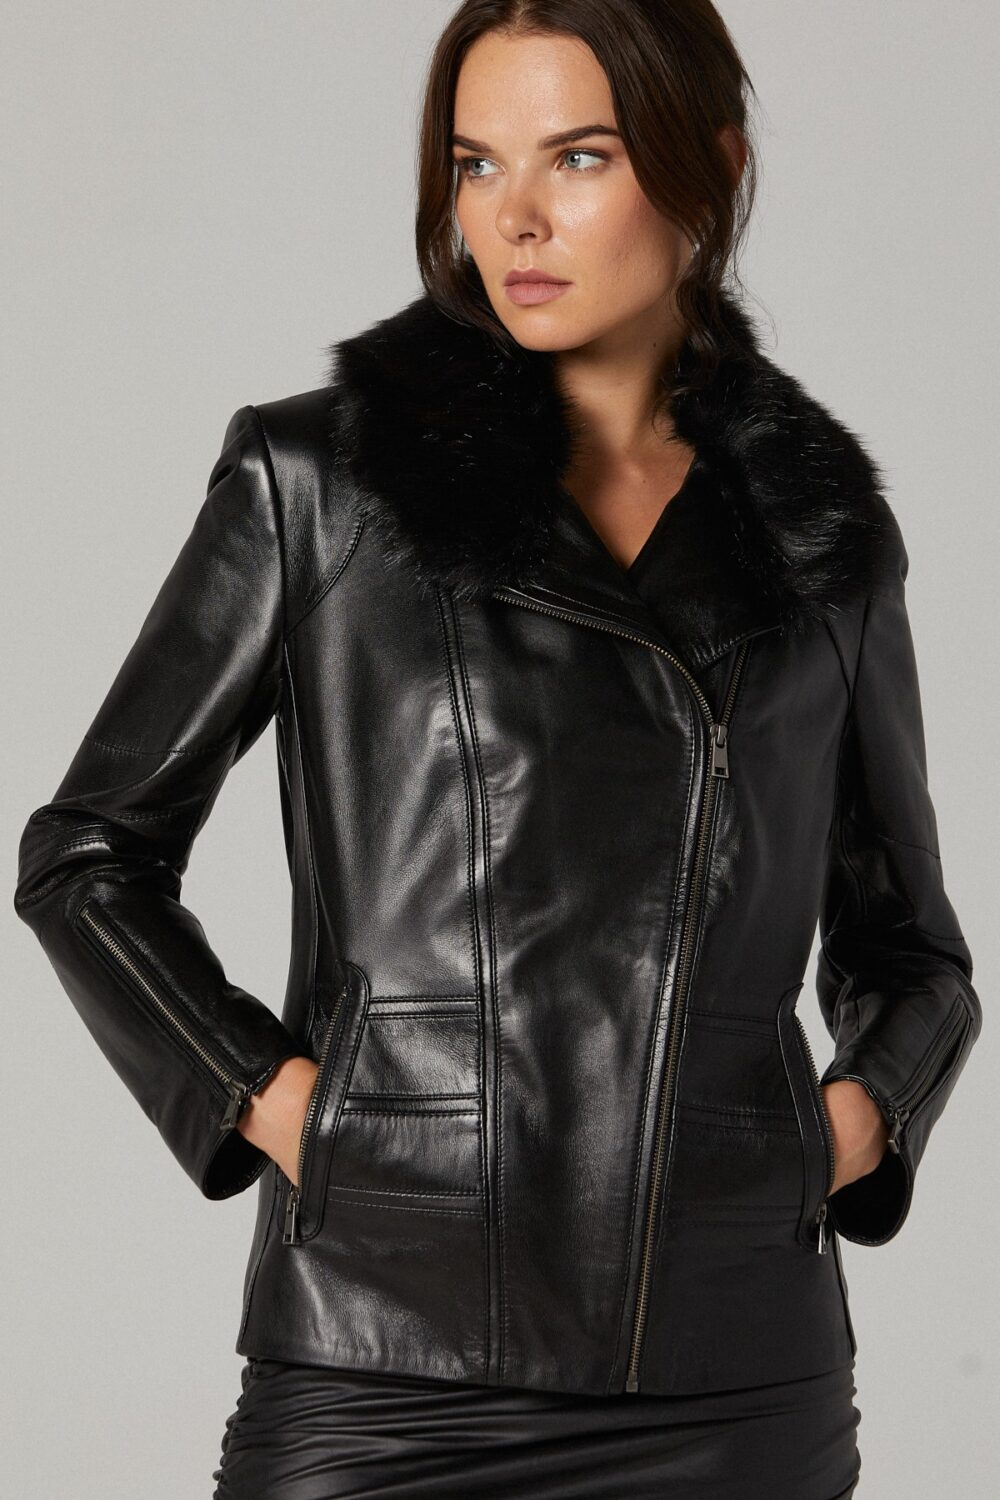 Black Leather Jacket With Fur